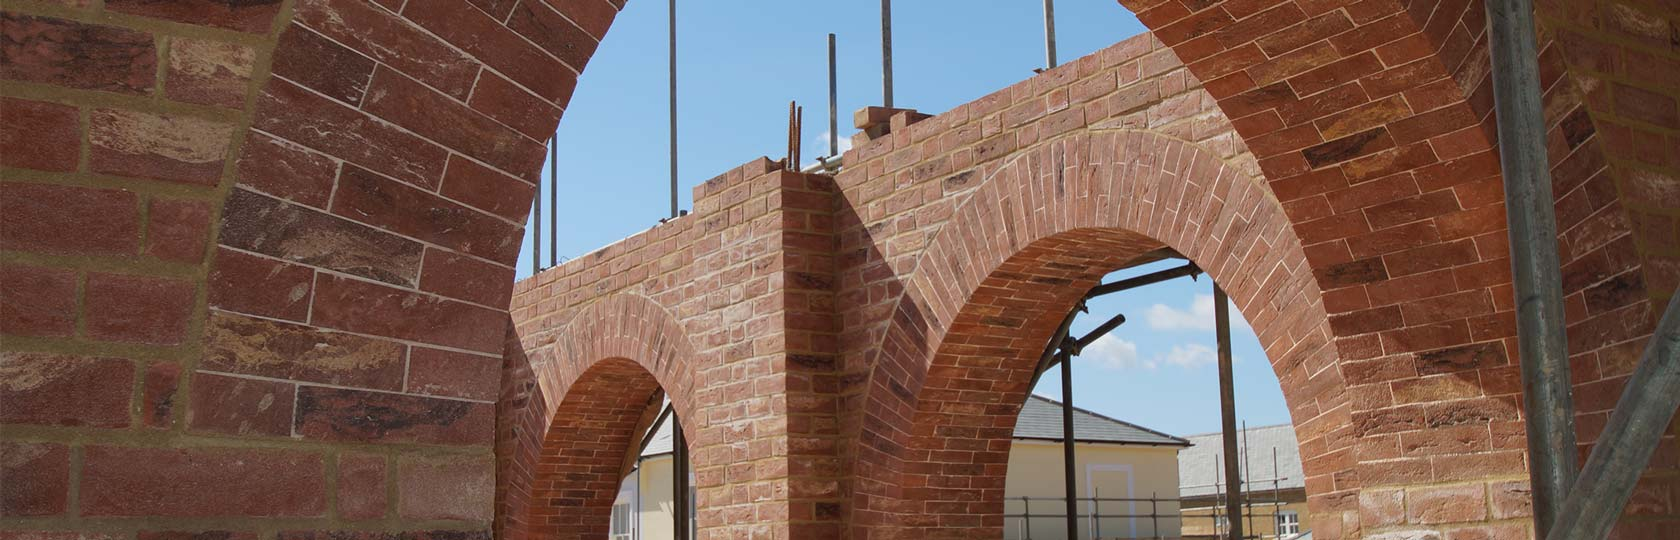 Brickwork Arches